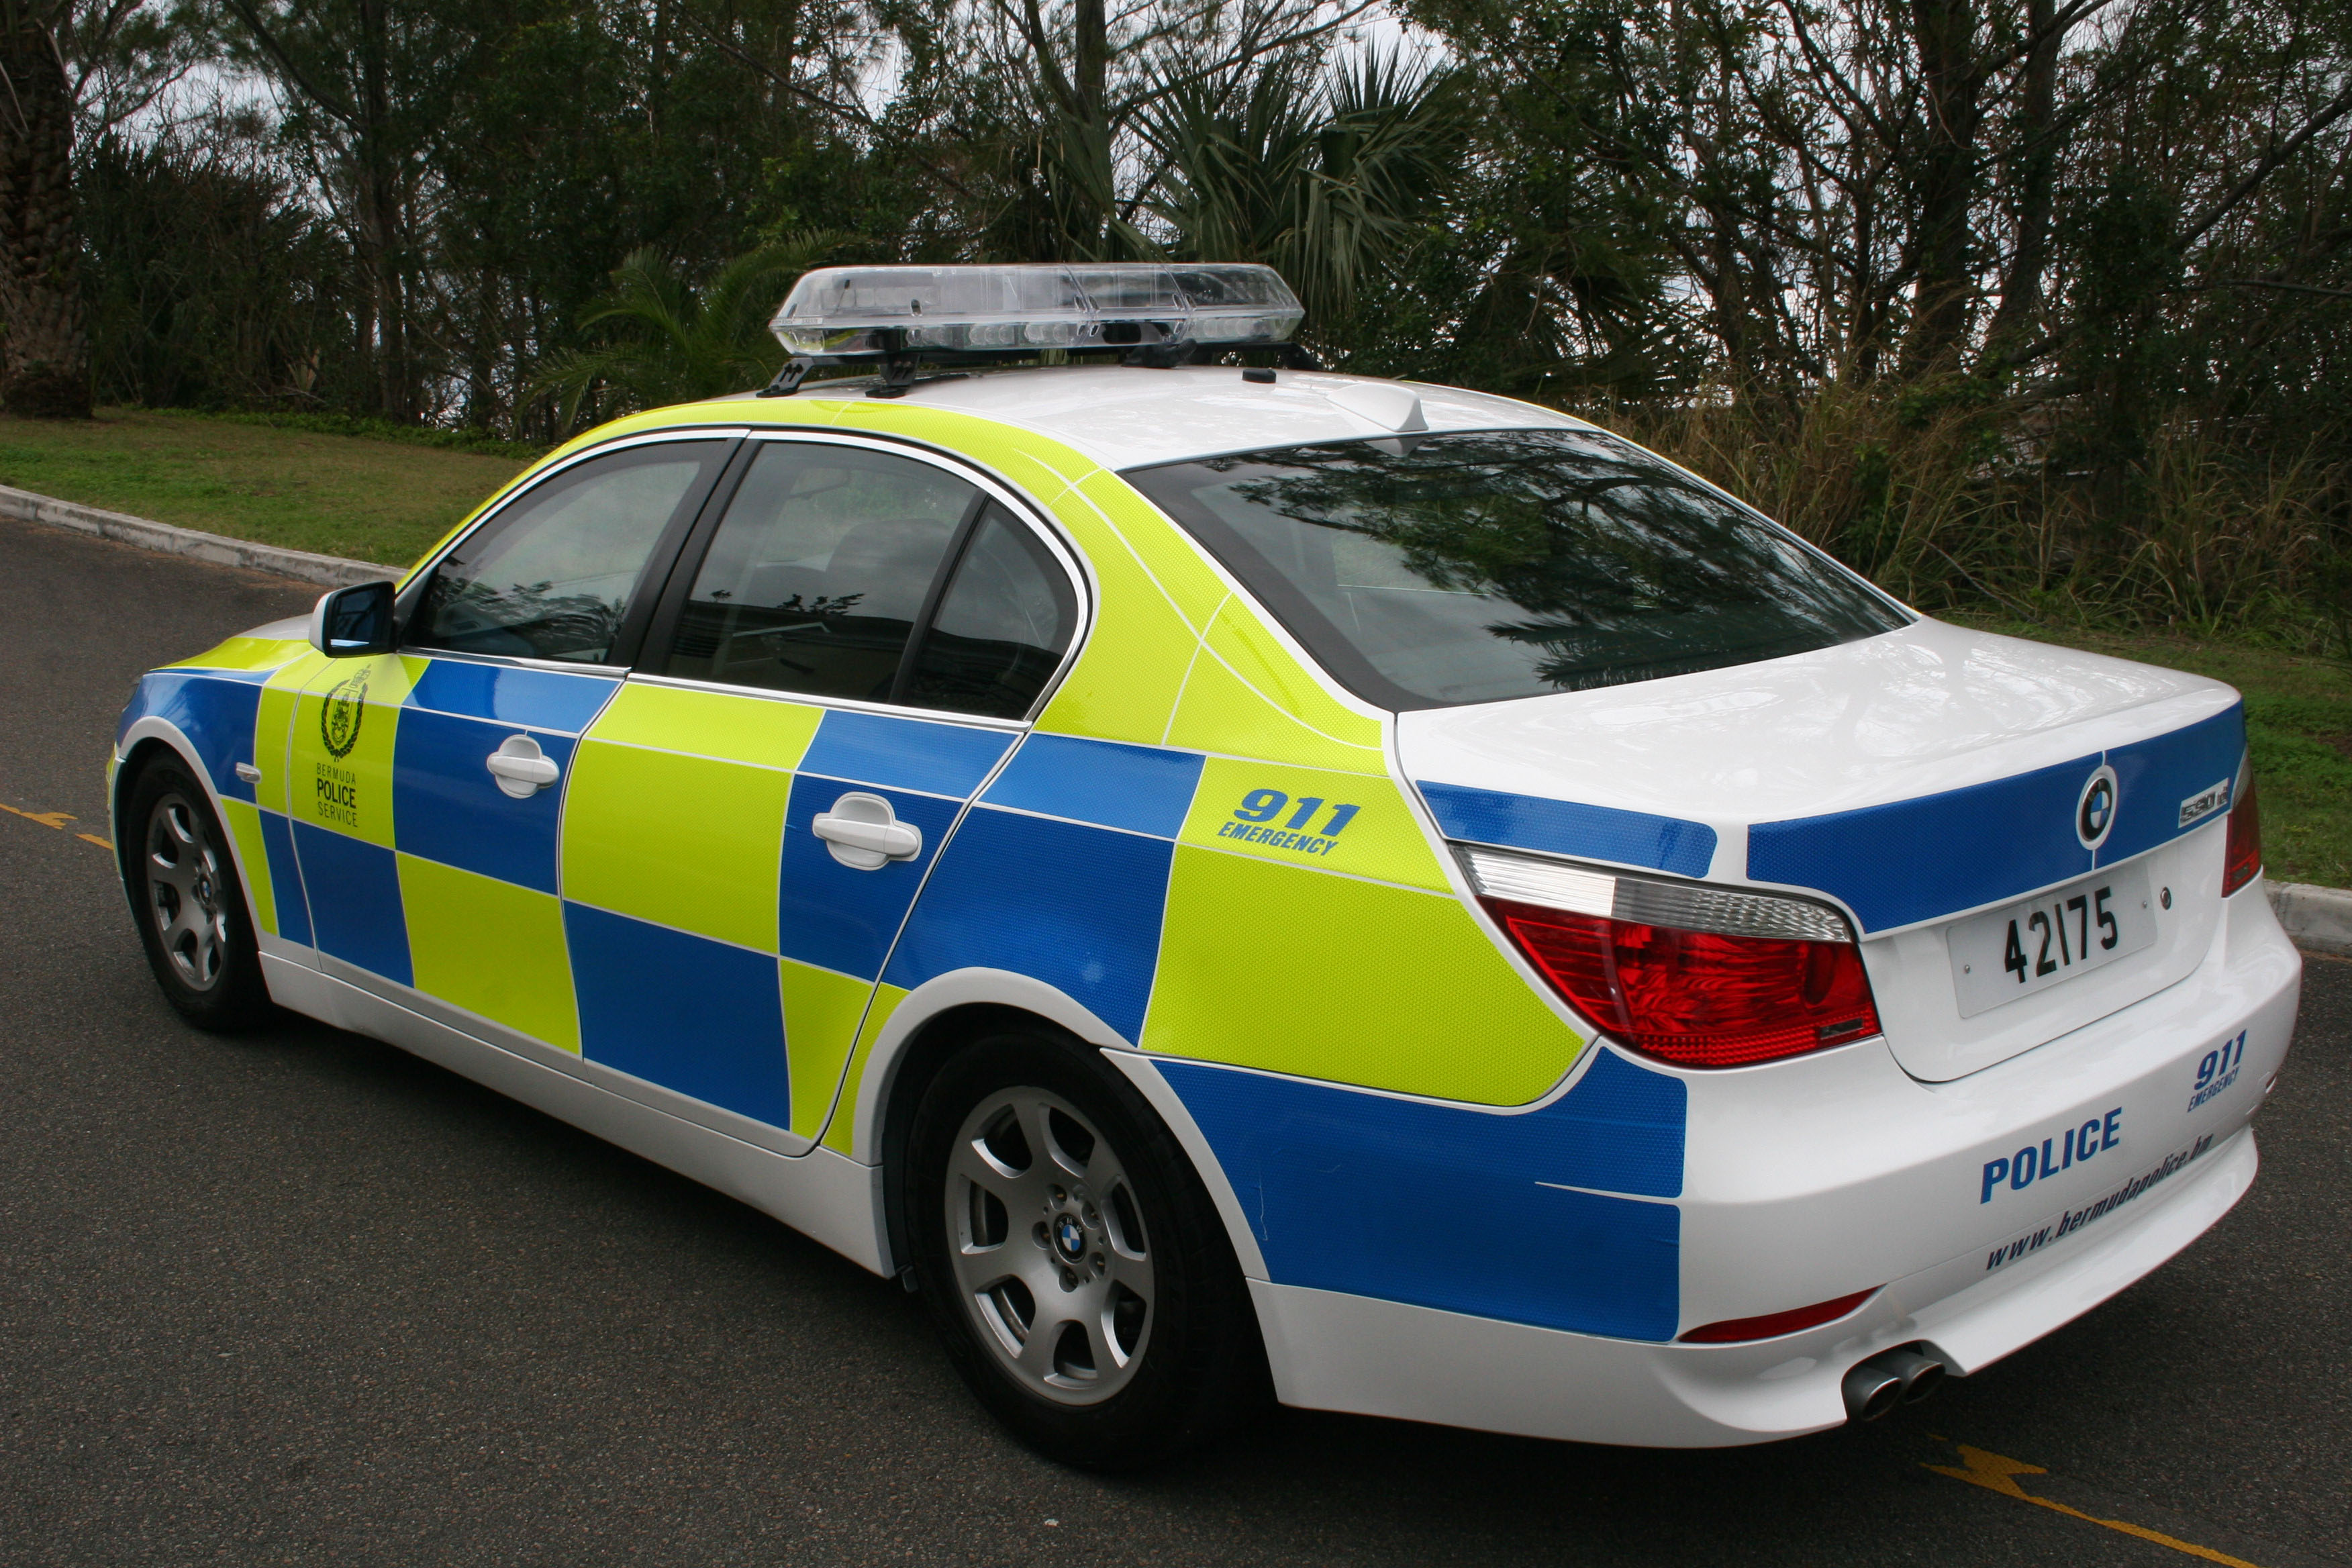 Police Car Website >> Welcome To The Bps Website Bermuda Police Service Acquires Pre